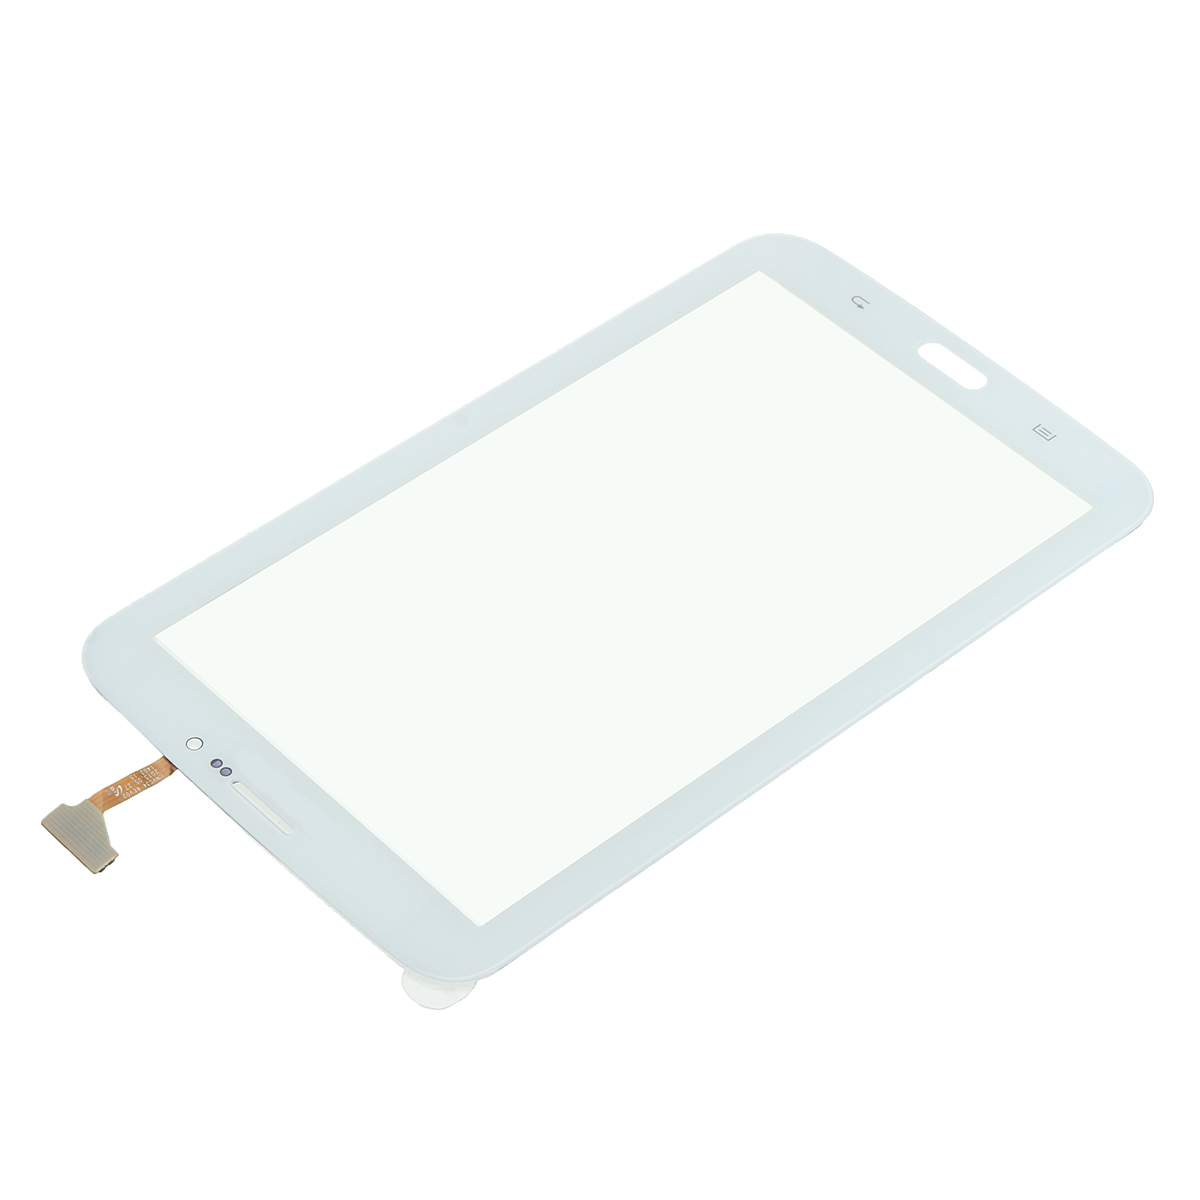 LCD Display Touch Screen Digitizer Assembly for Samsung Galaxy Tab 3 7.0 T211